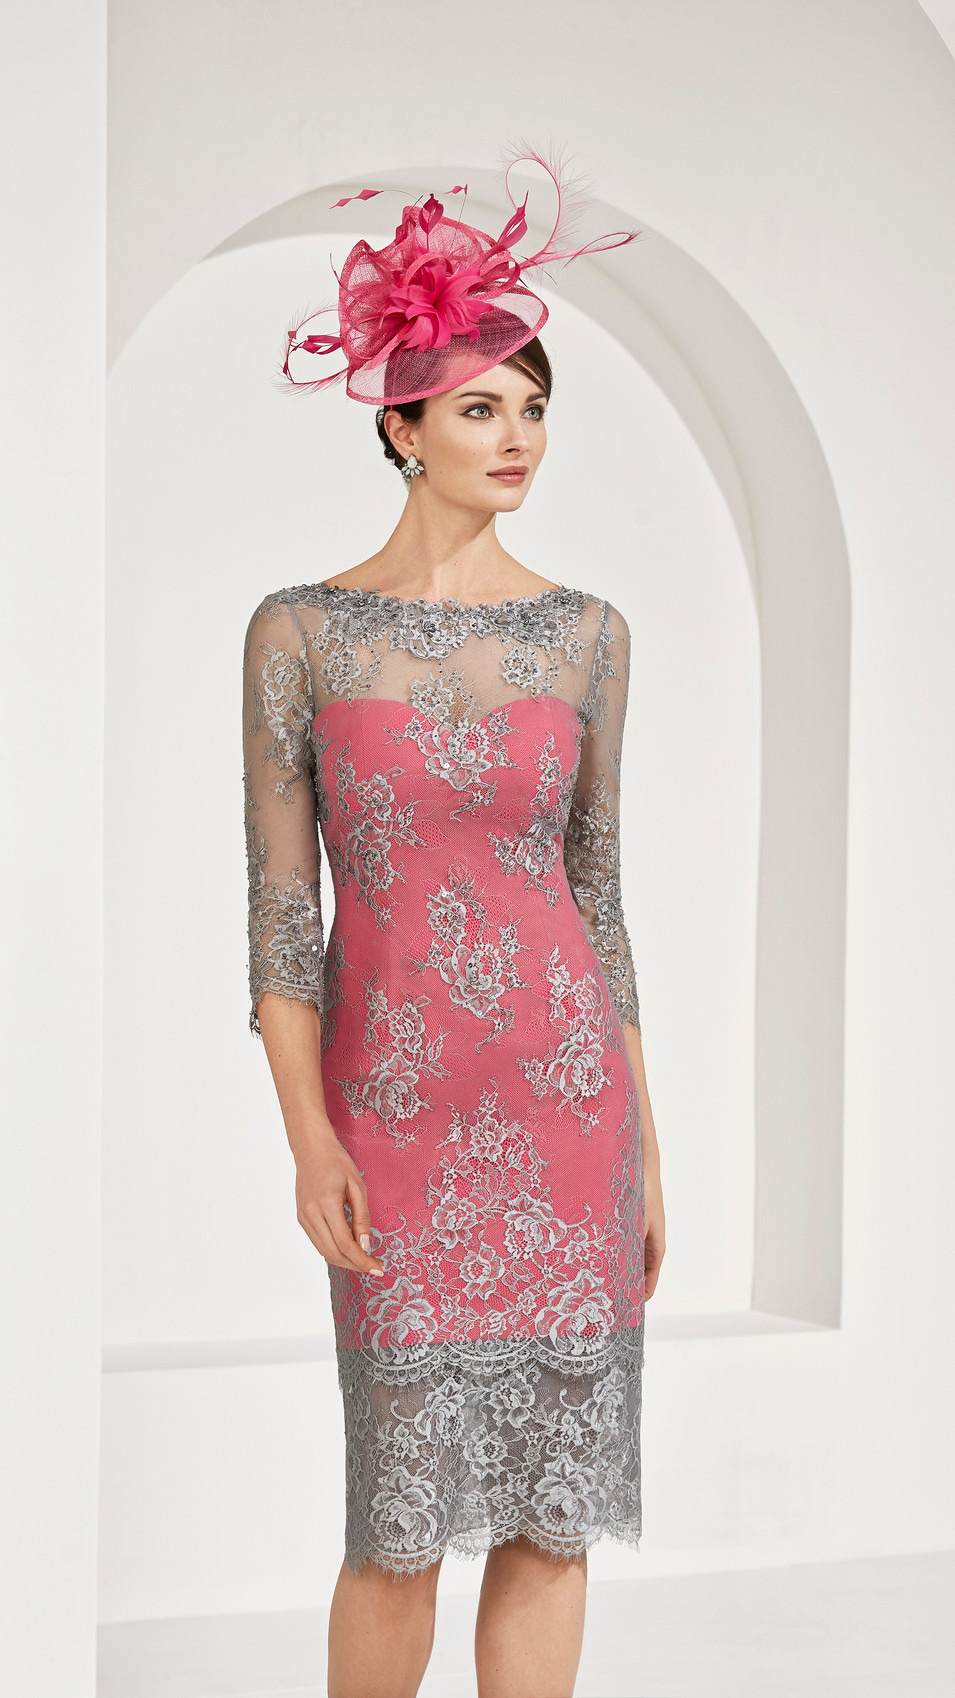 Pink Dress with Grey Overlay